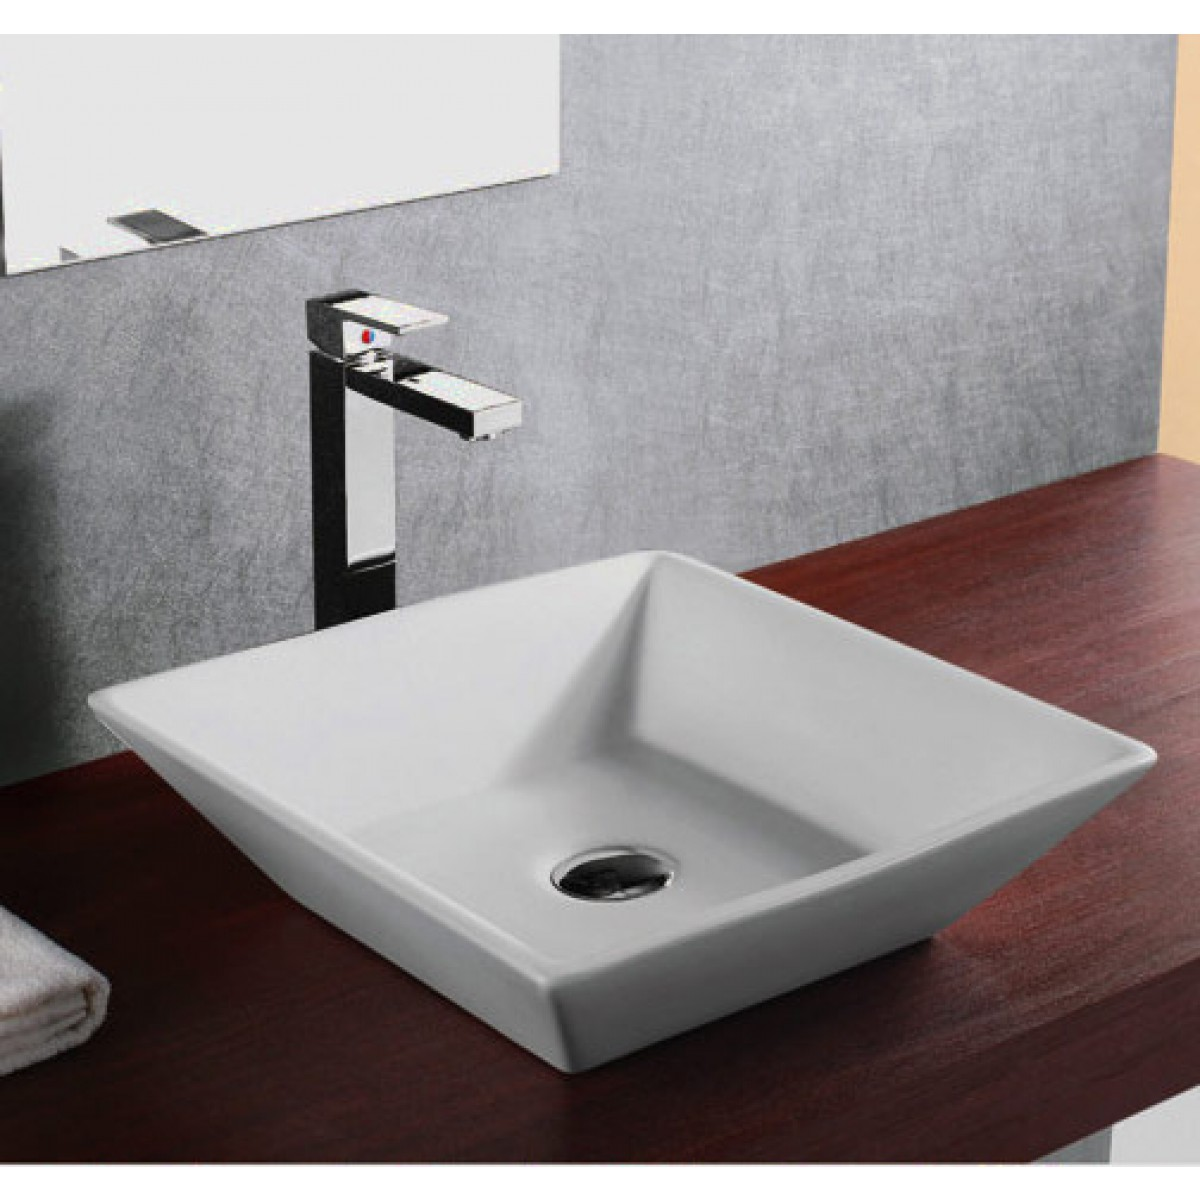 European Design Slope Wall Porcelain Ceramic Countertop Bathroom Vessel Sink    16 X 16 X 4 1/2 Inch